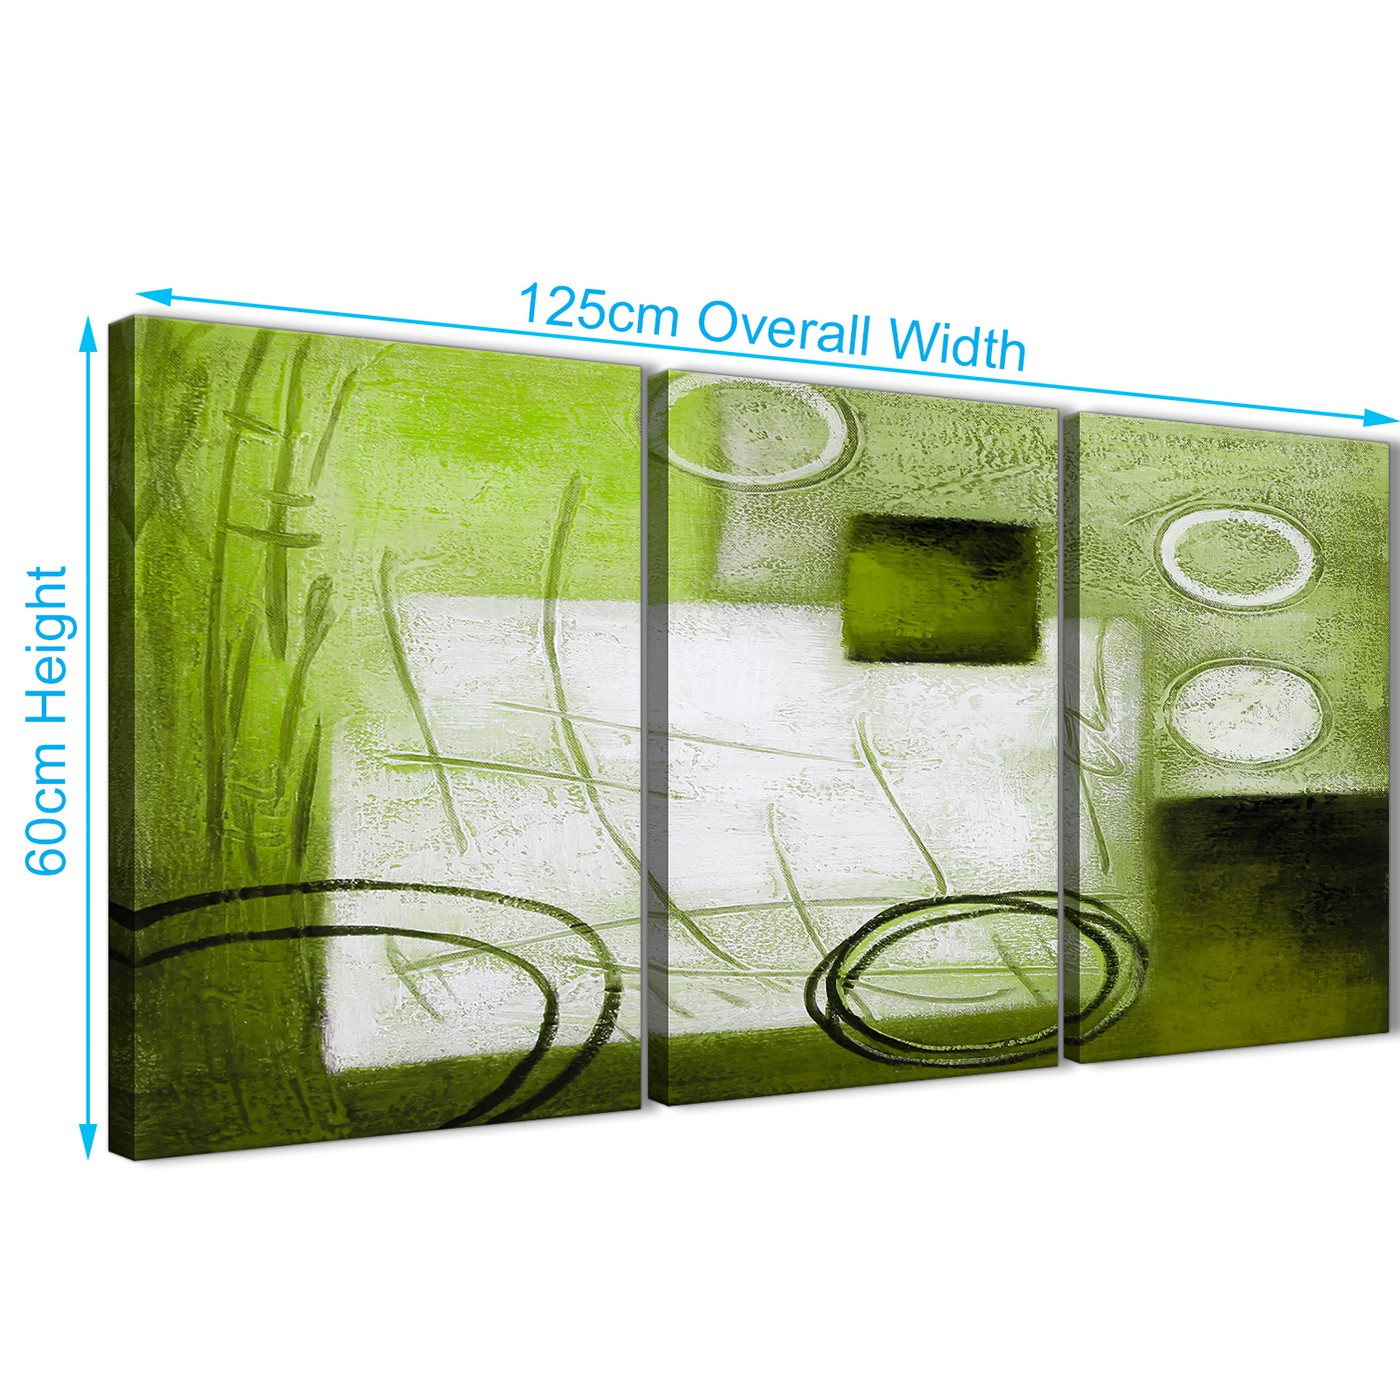 lime green office accessories. Quality 3 Piece Lime Green Painting Kitchen Canvas Pictures Decor -  Abstract 3431 126cm Set Display Gallery Item 3; Multiple Lime Green Office Accessories